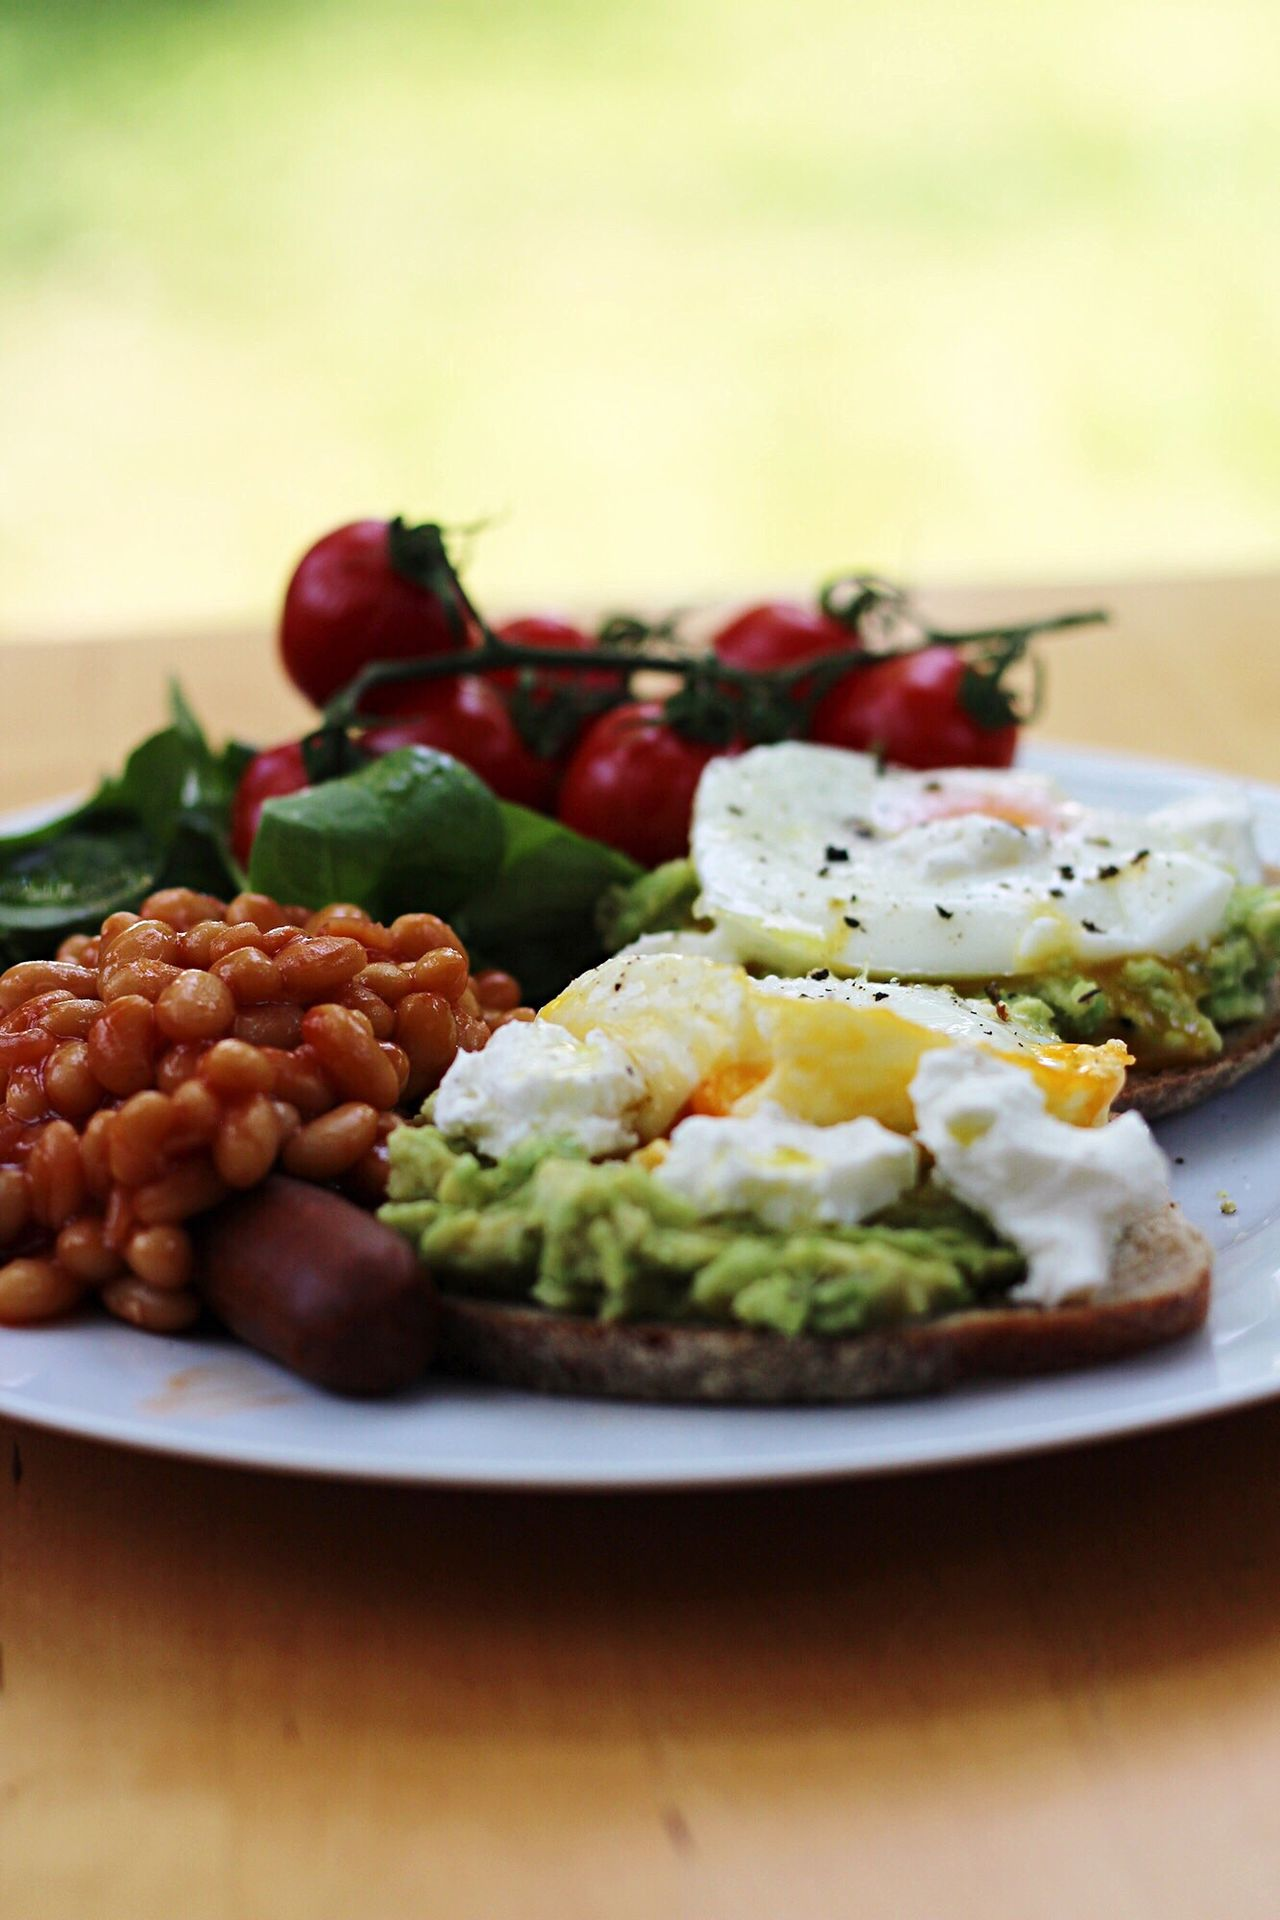 Food And Drink Food Plate Ready-to-eat Freshness Healthy Eating Serving Size Close-up Table No People Indoors  Focus On Foreground Poached Eggs  English Breakfast Baked Beans Veggie Brunch Brunch Vegetarian Avocado Avocado Toast